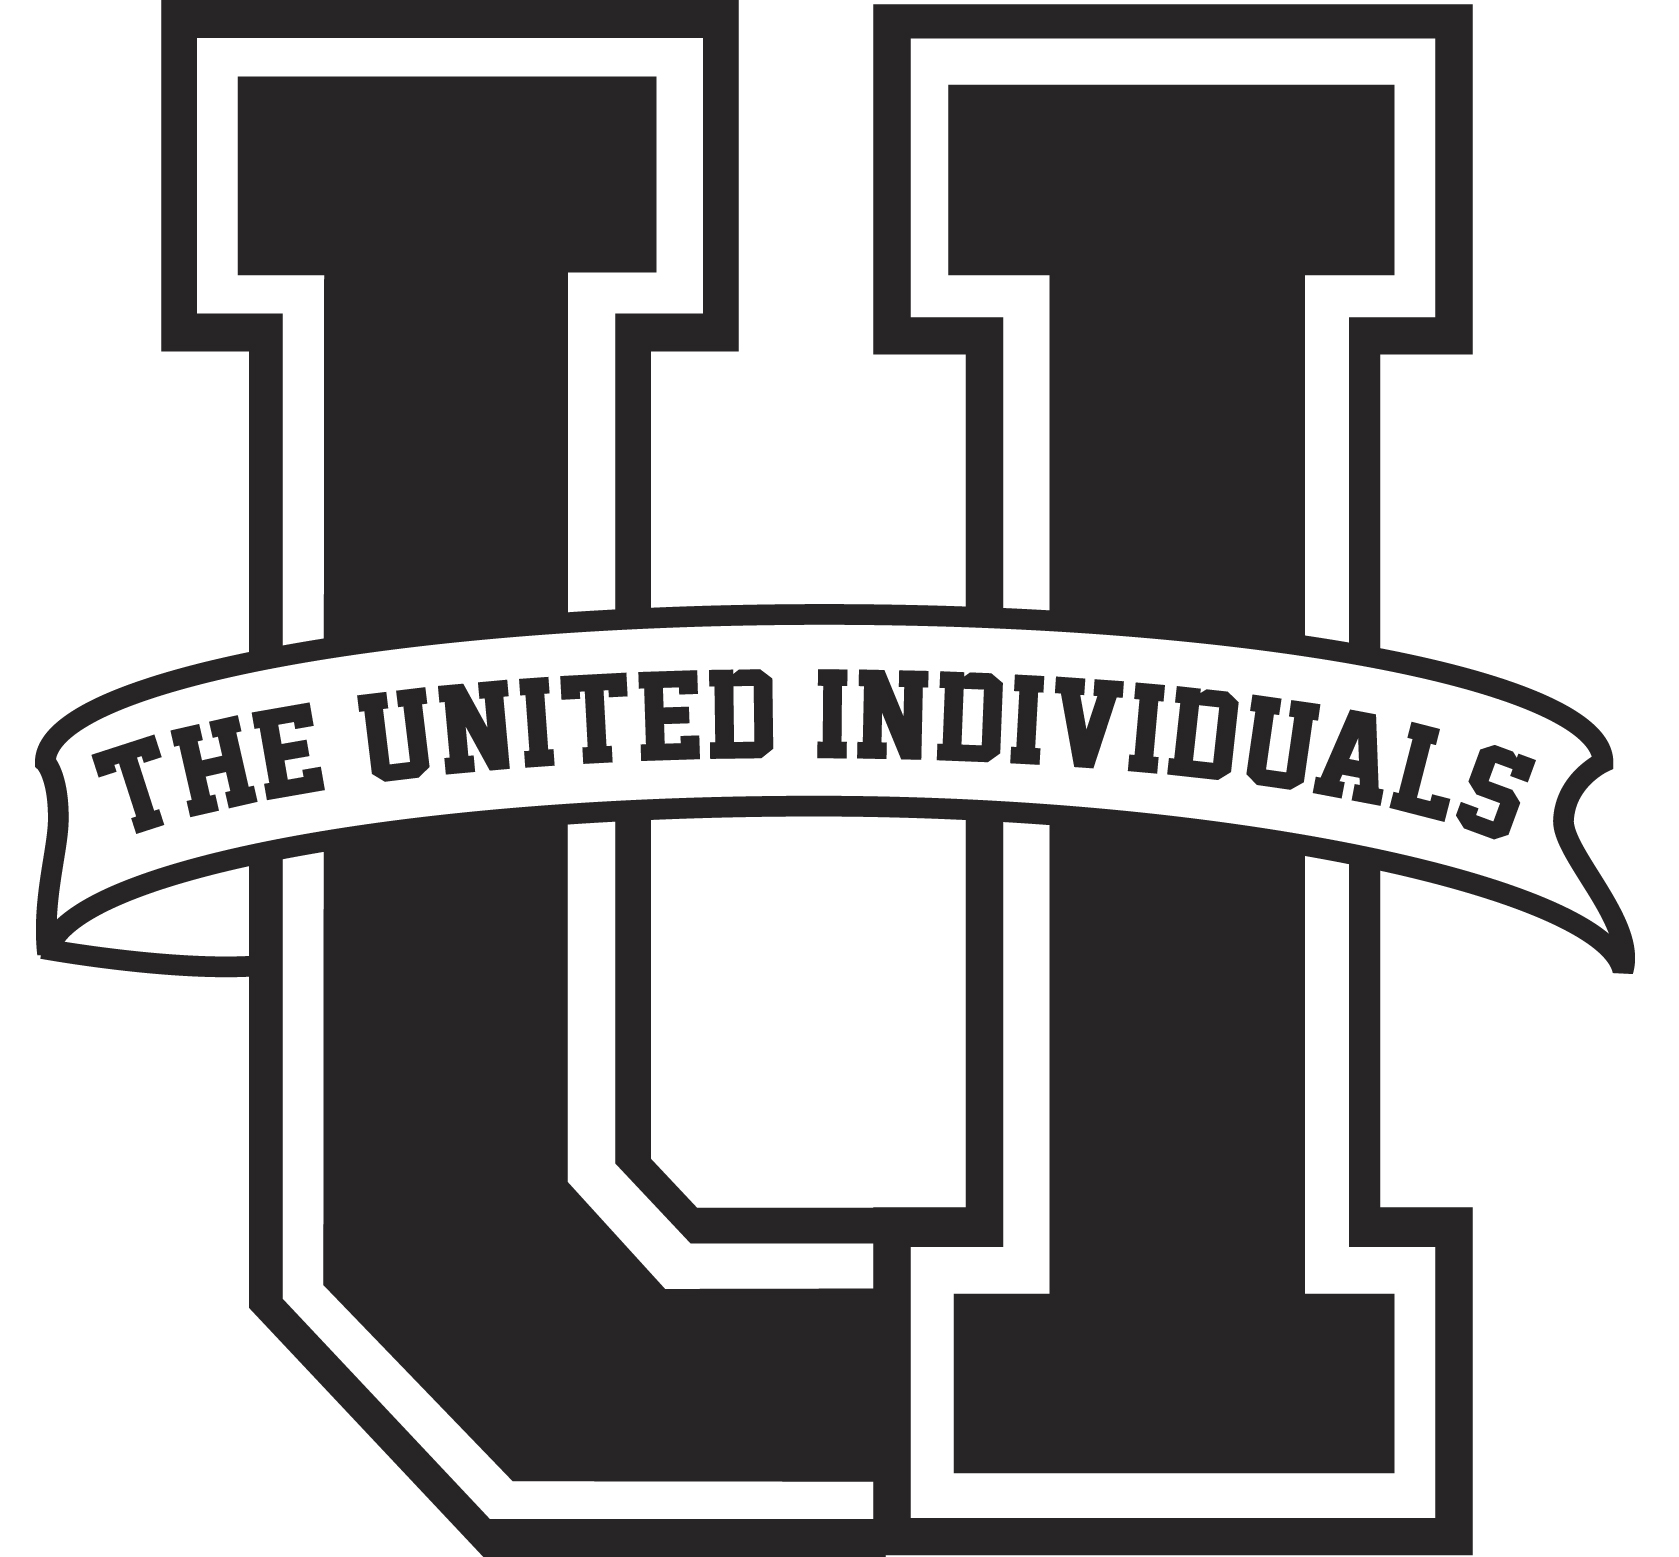 The United Individuals